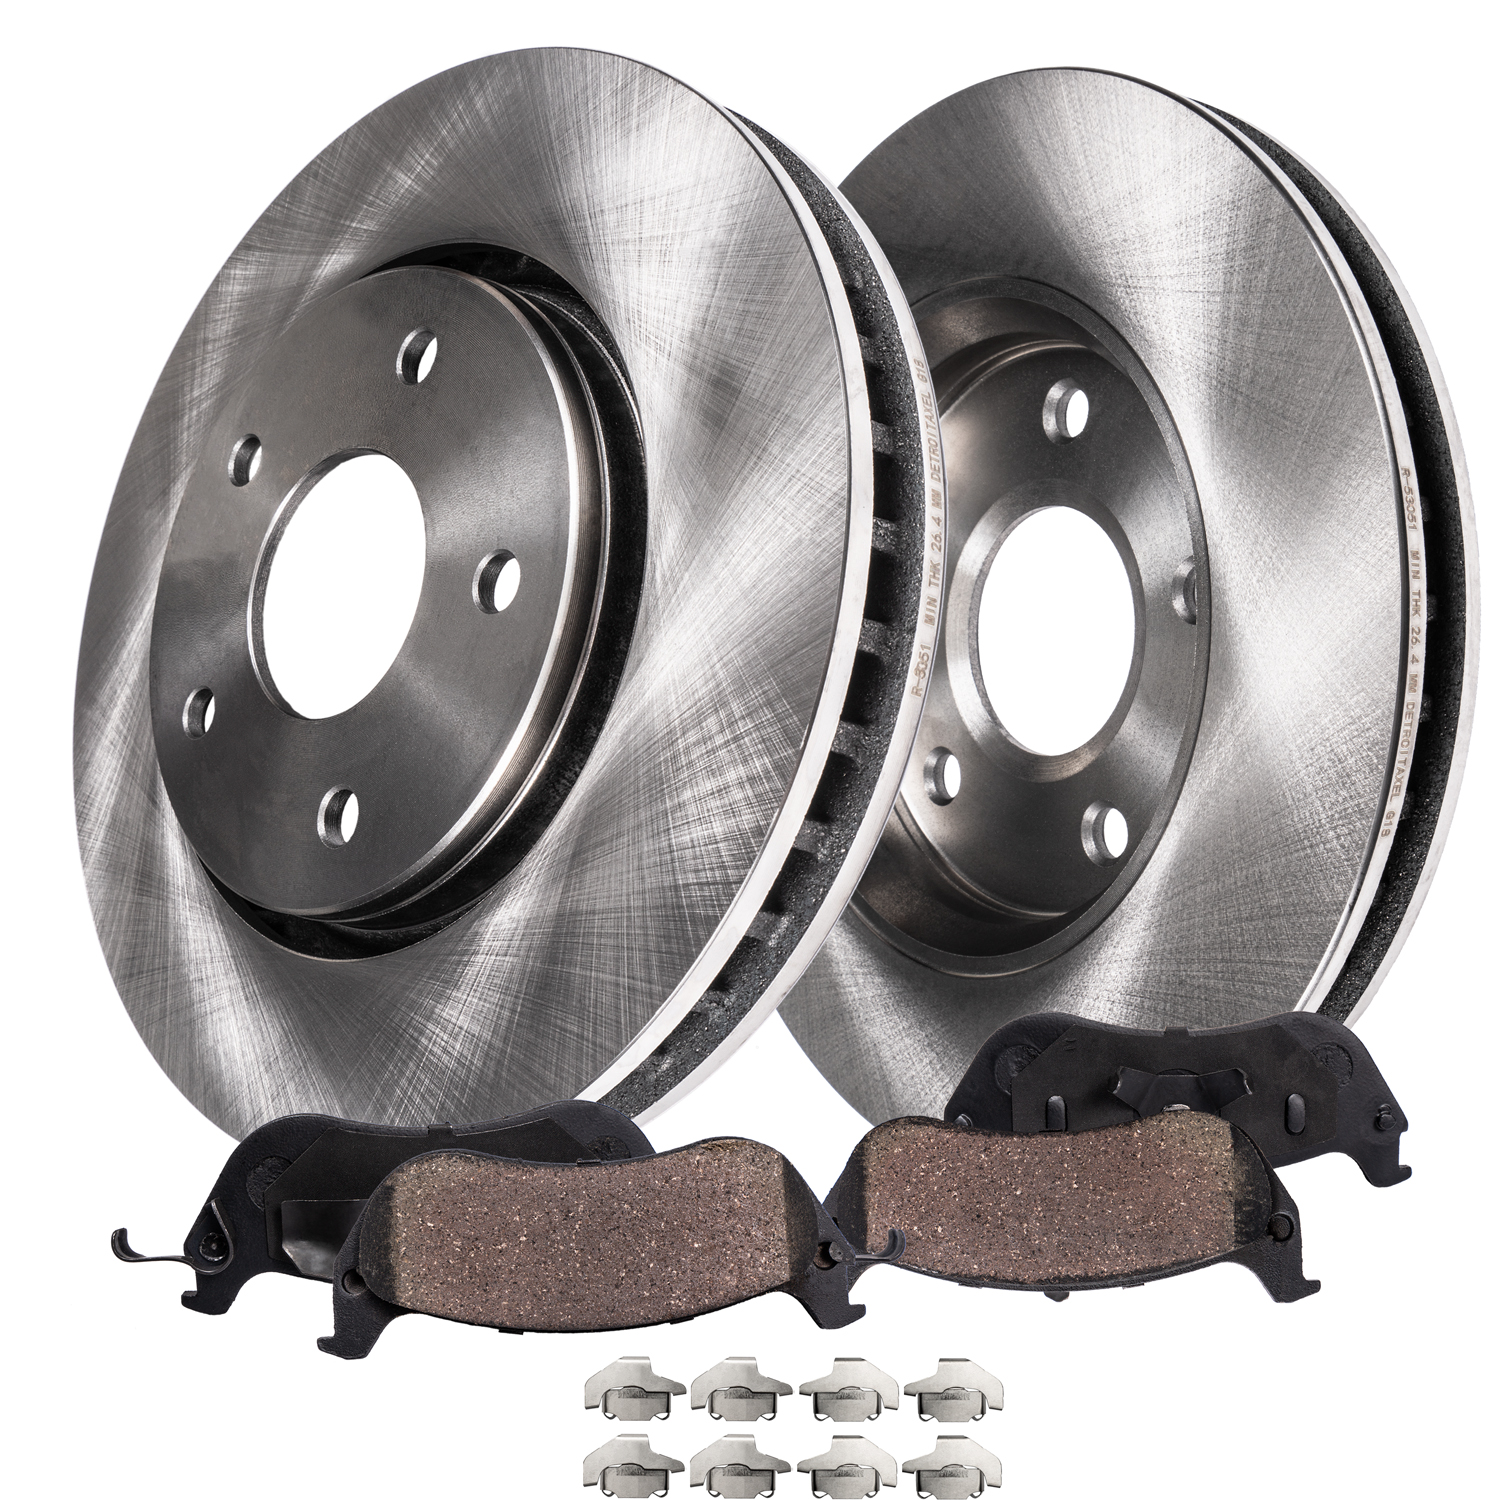 Rear Brake Rotors Ceramic Pads For 2004 2005 2006 2007 2008 CHRYSLER PACIFICA